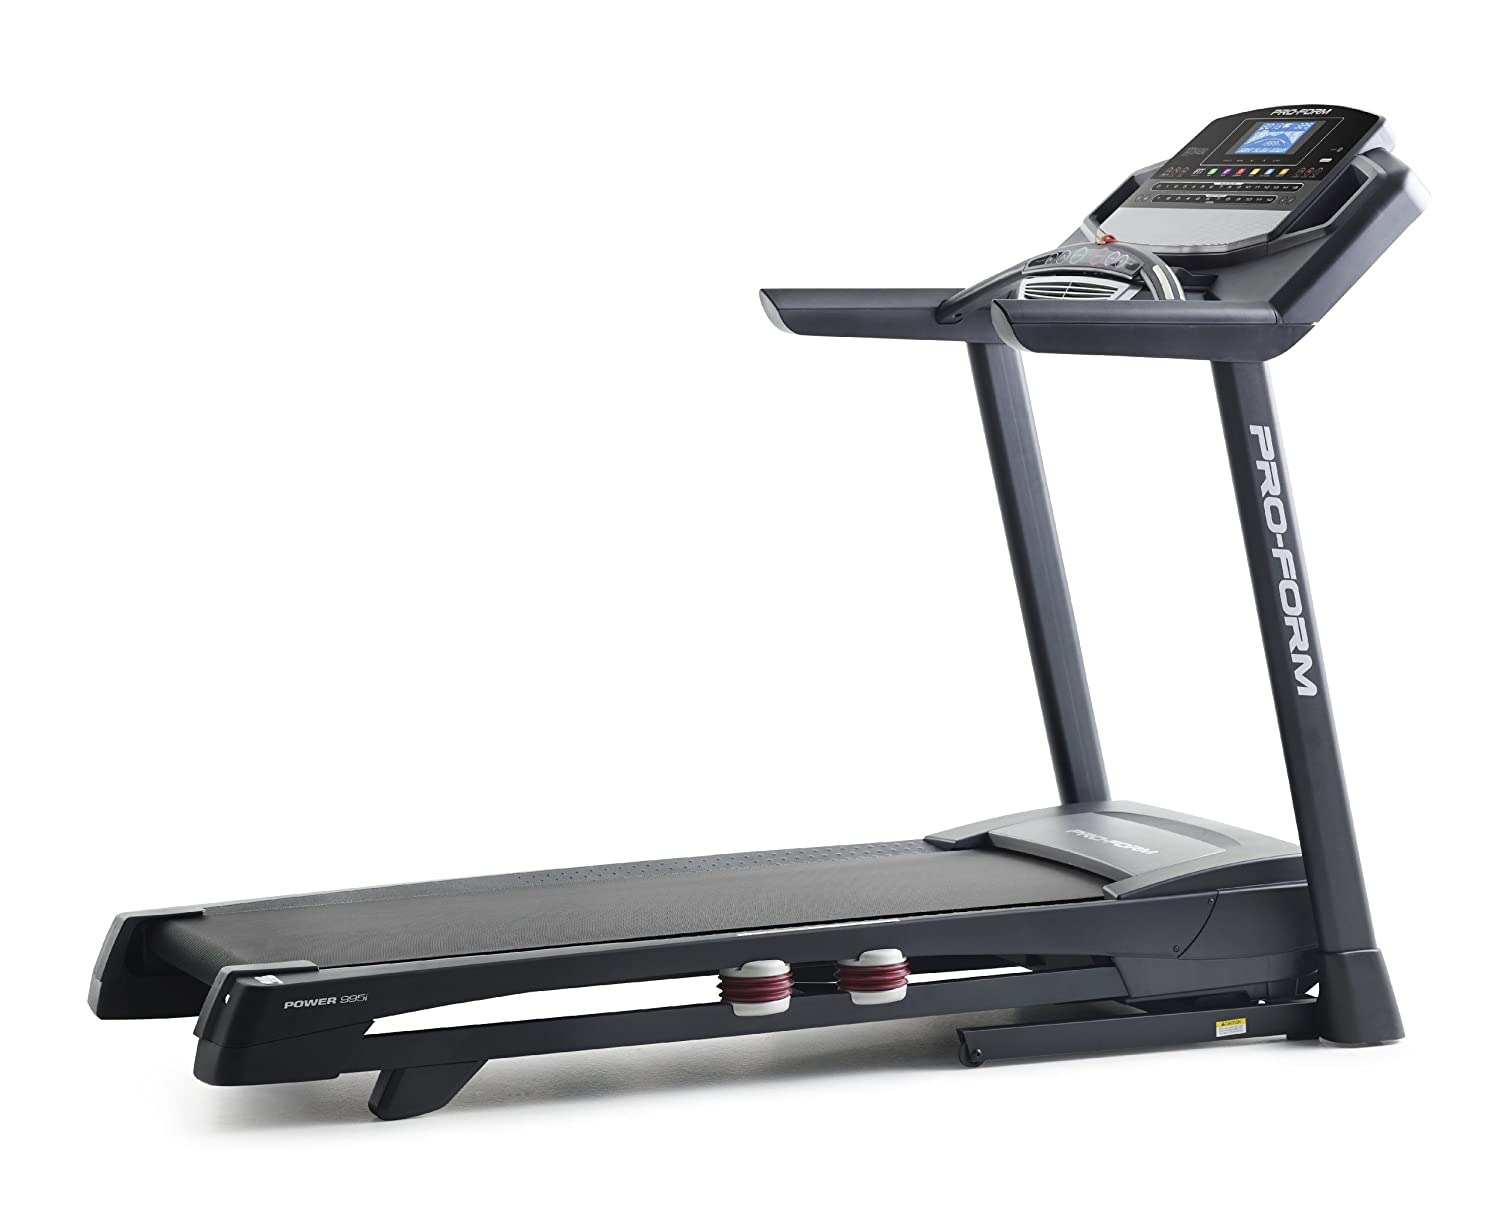 ProForm Power 995i Treadmill - Longest Tread Belt